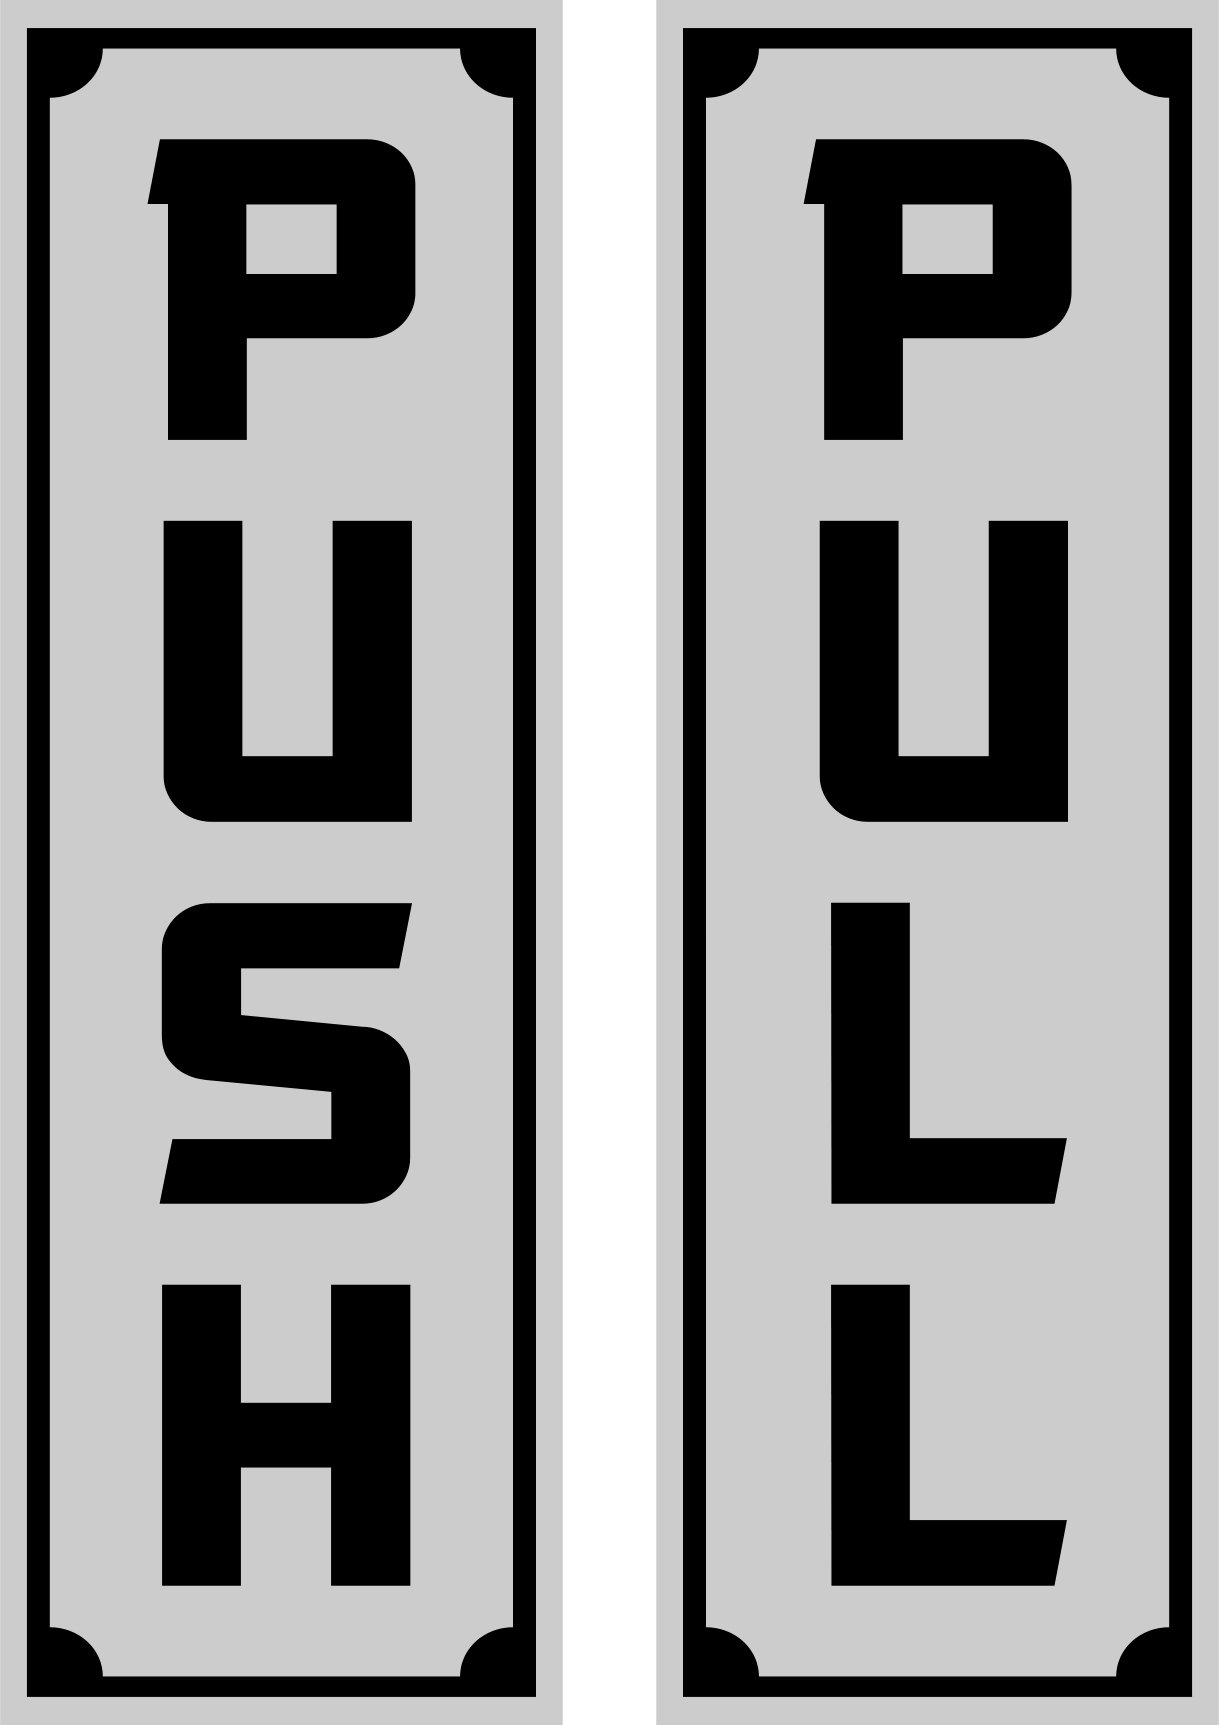 Stylish Push Pull Door Entrance Exit Signs Domed (Chrome) Indoor/Outdoor, Self Adhesive, Great For Home Or Business, Schools, Retail Stores, Shops, Studios, Banks